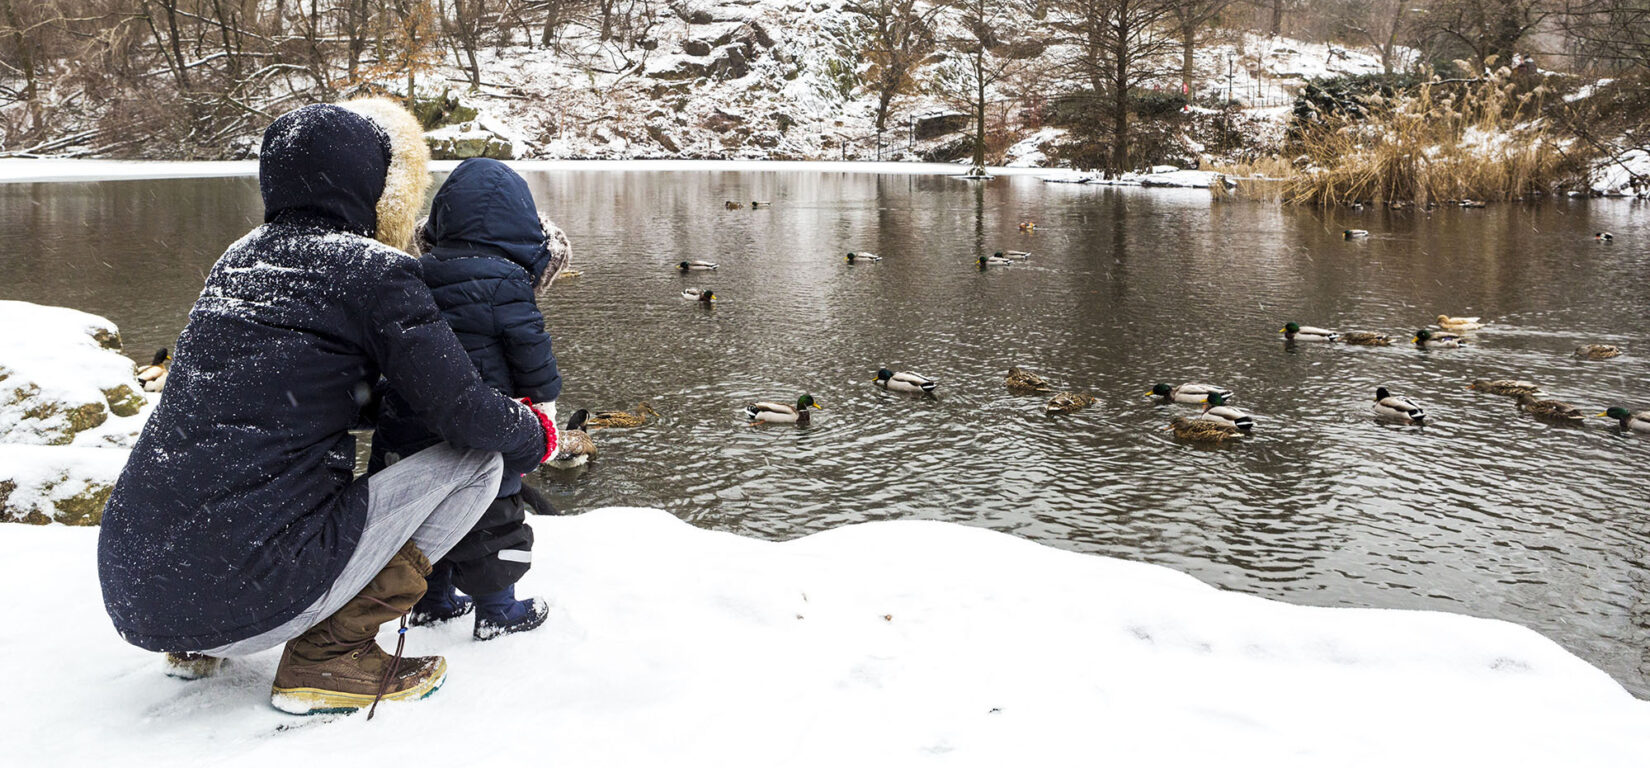 Winter Stories from Central Parks Wildlife